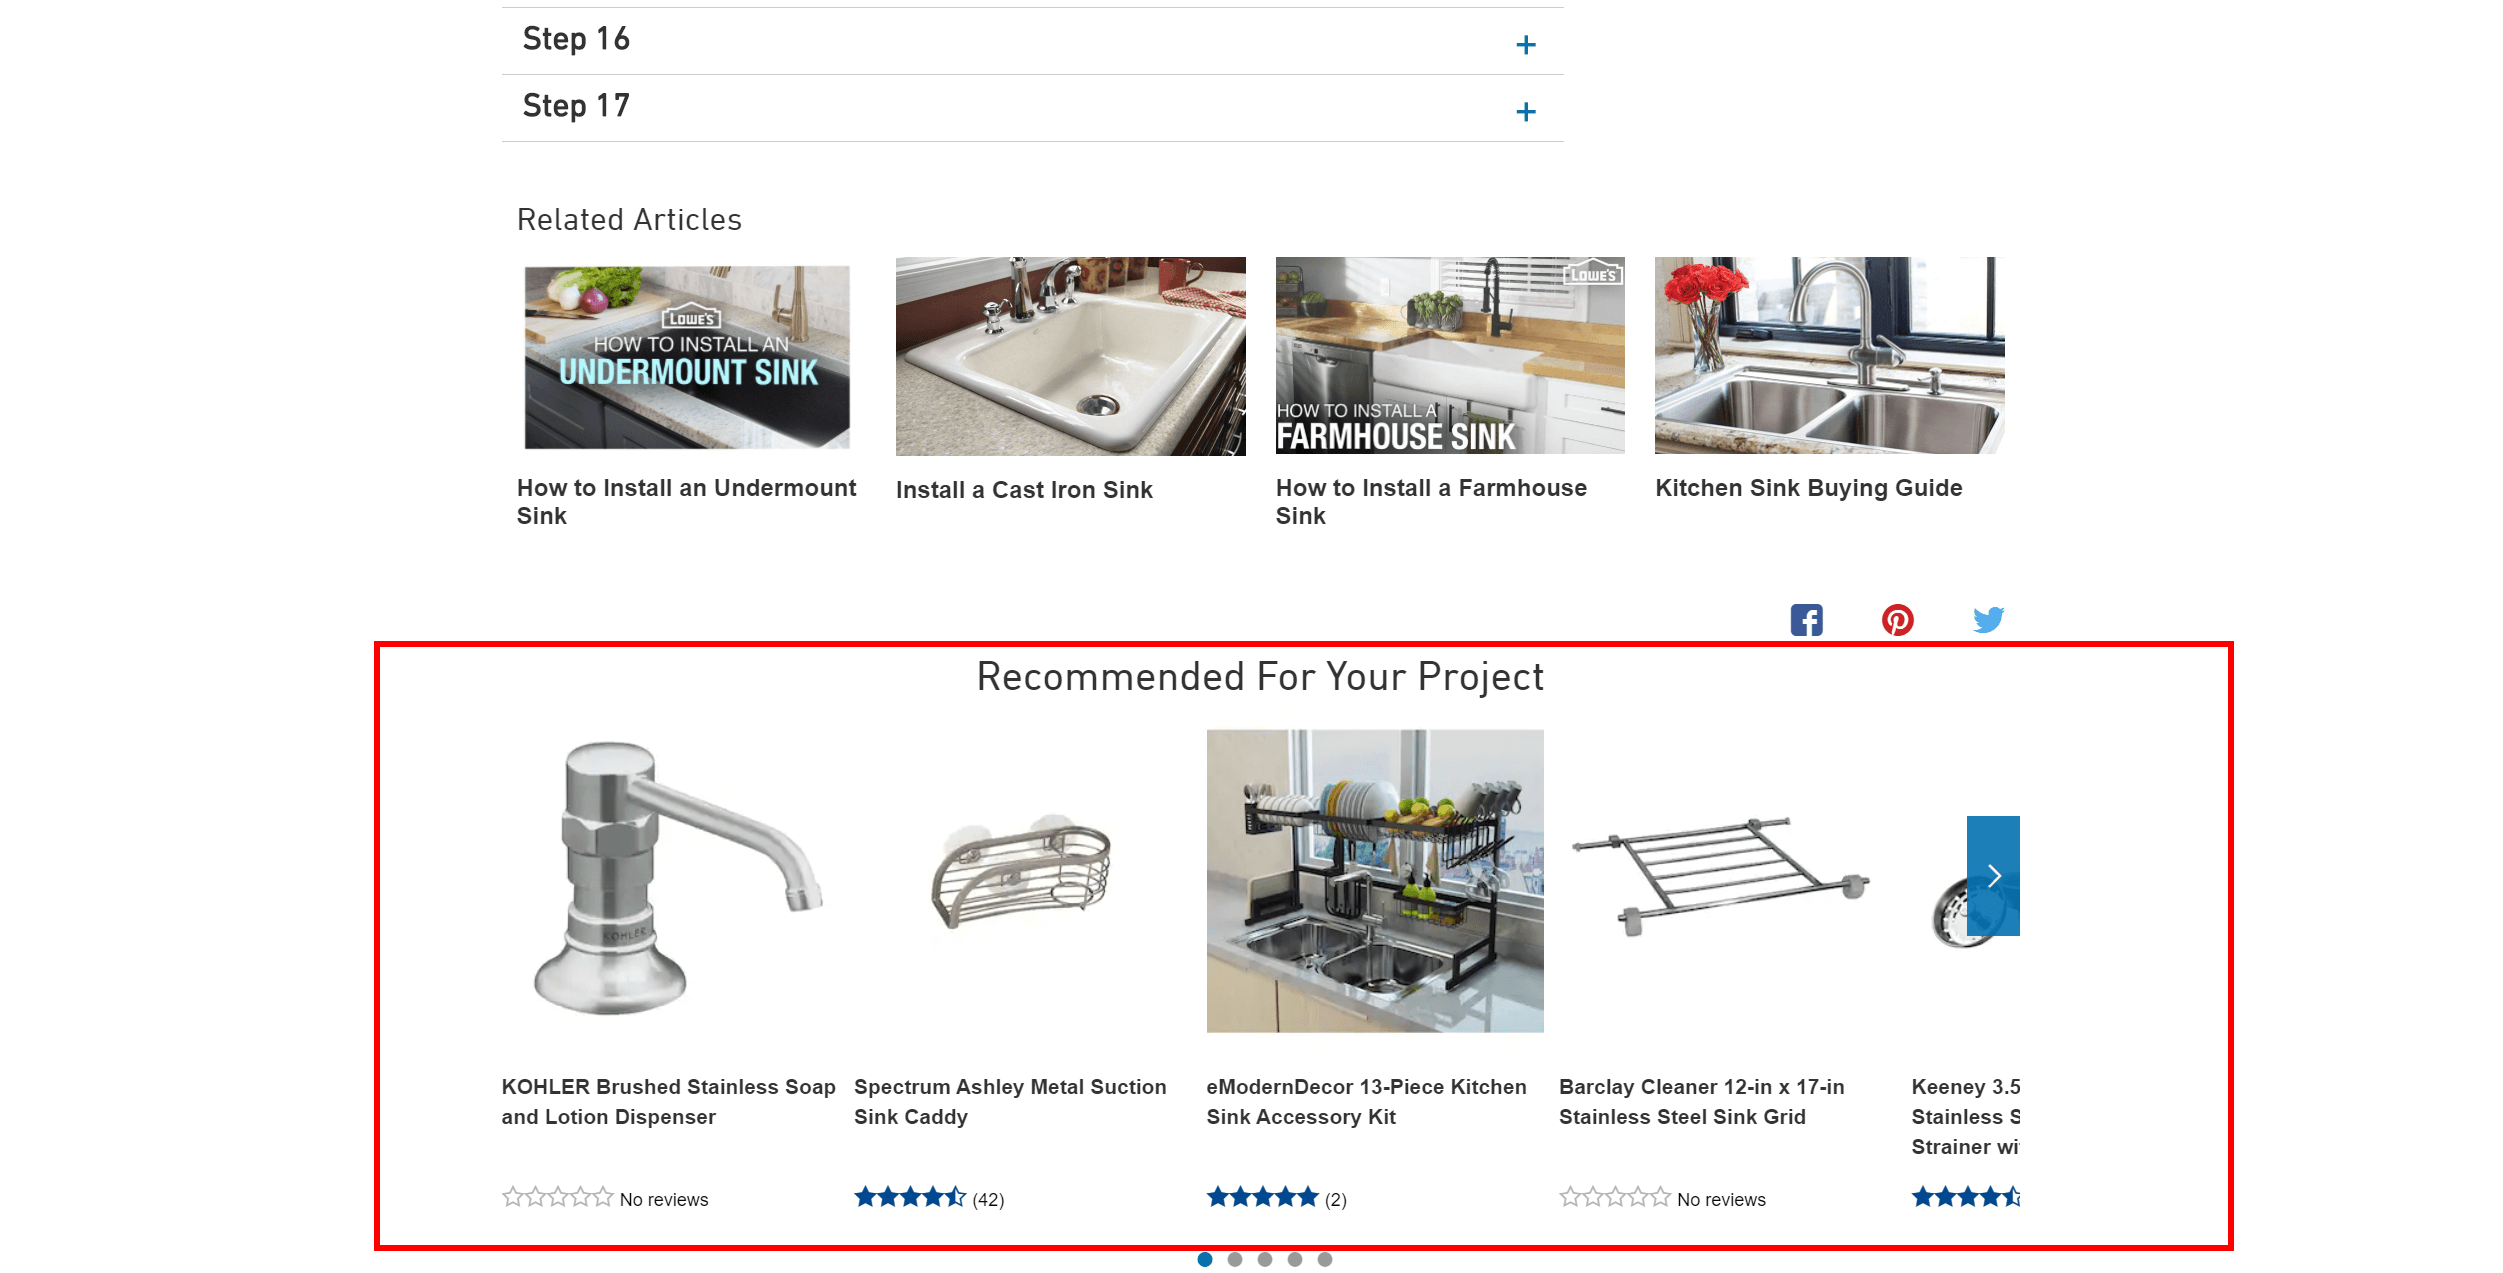 Recommended products from the Lowe's website